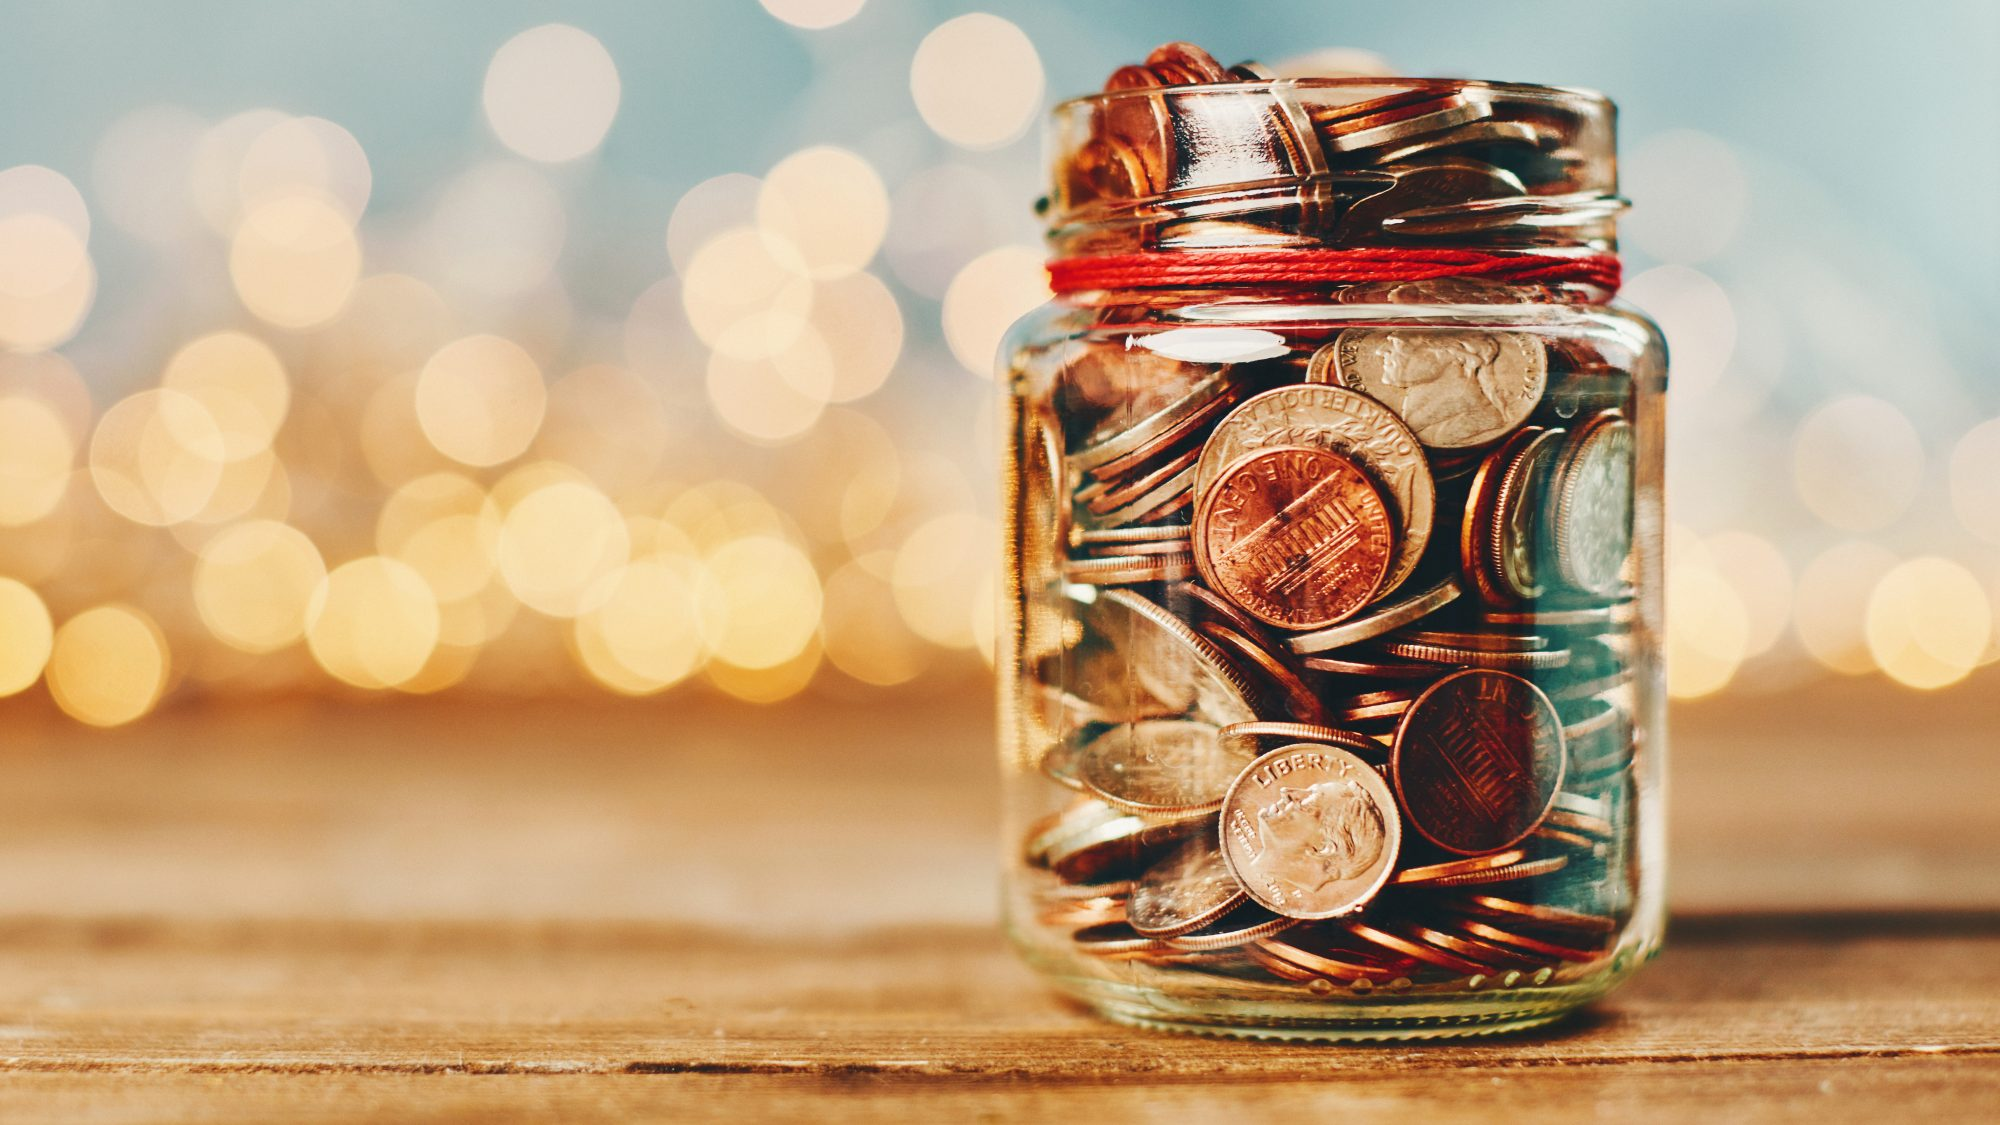 Holiday savings - how to save money during the holidays: coins in a jar